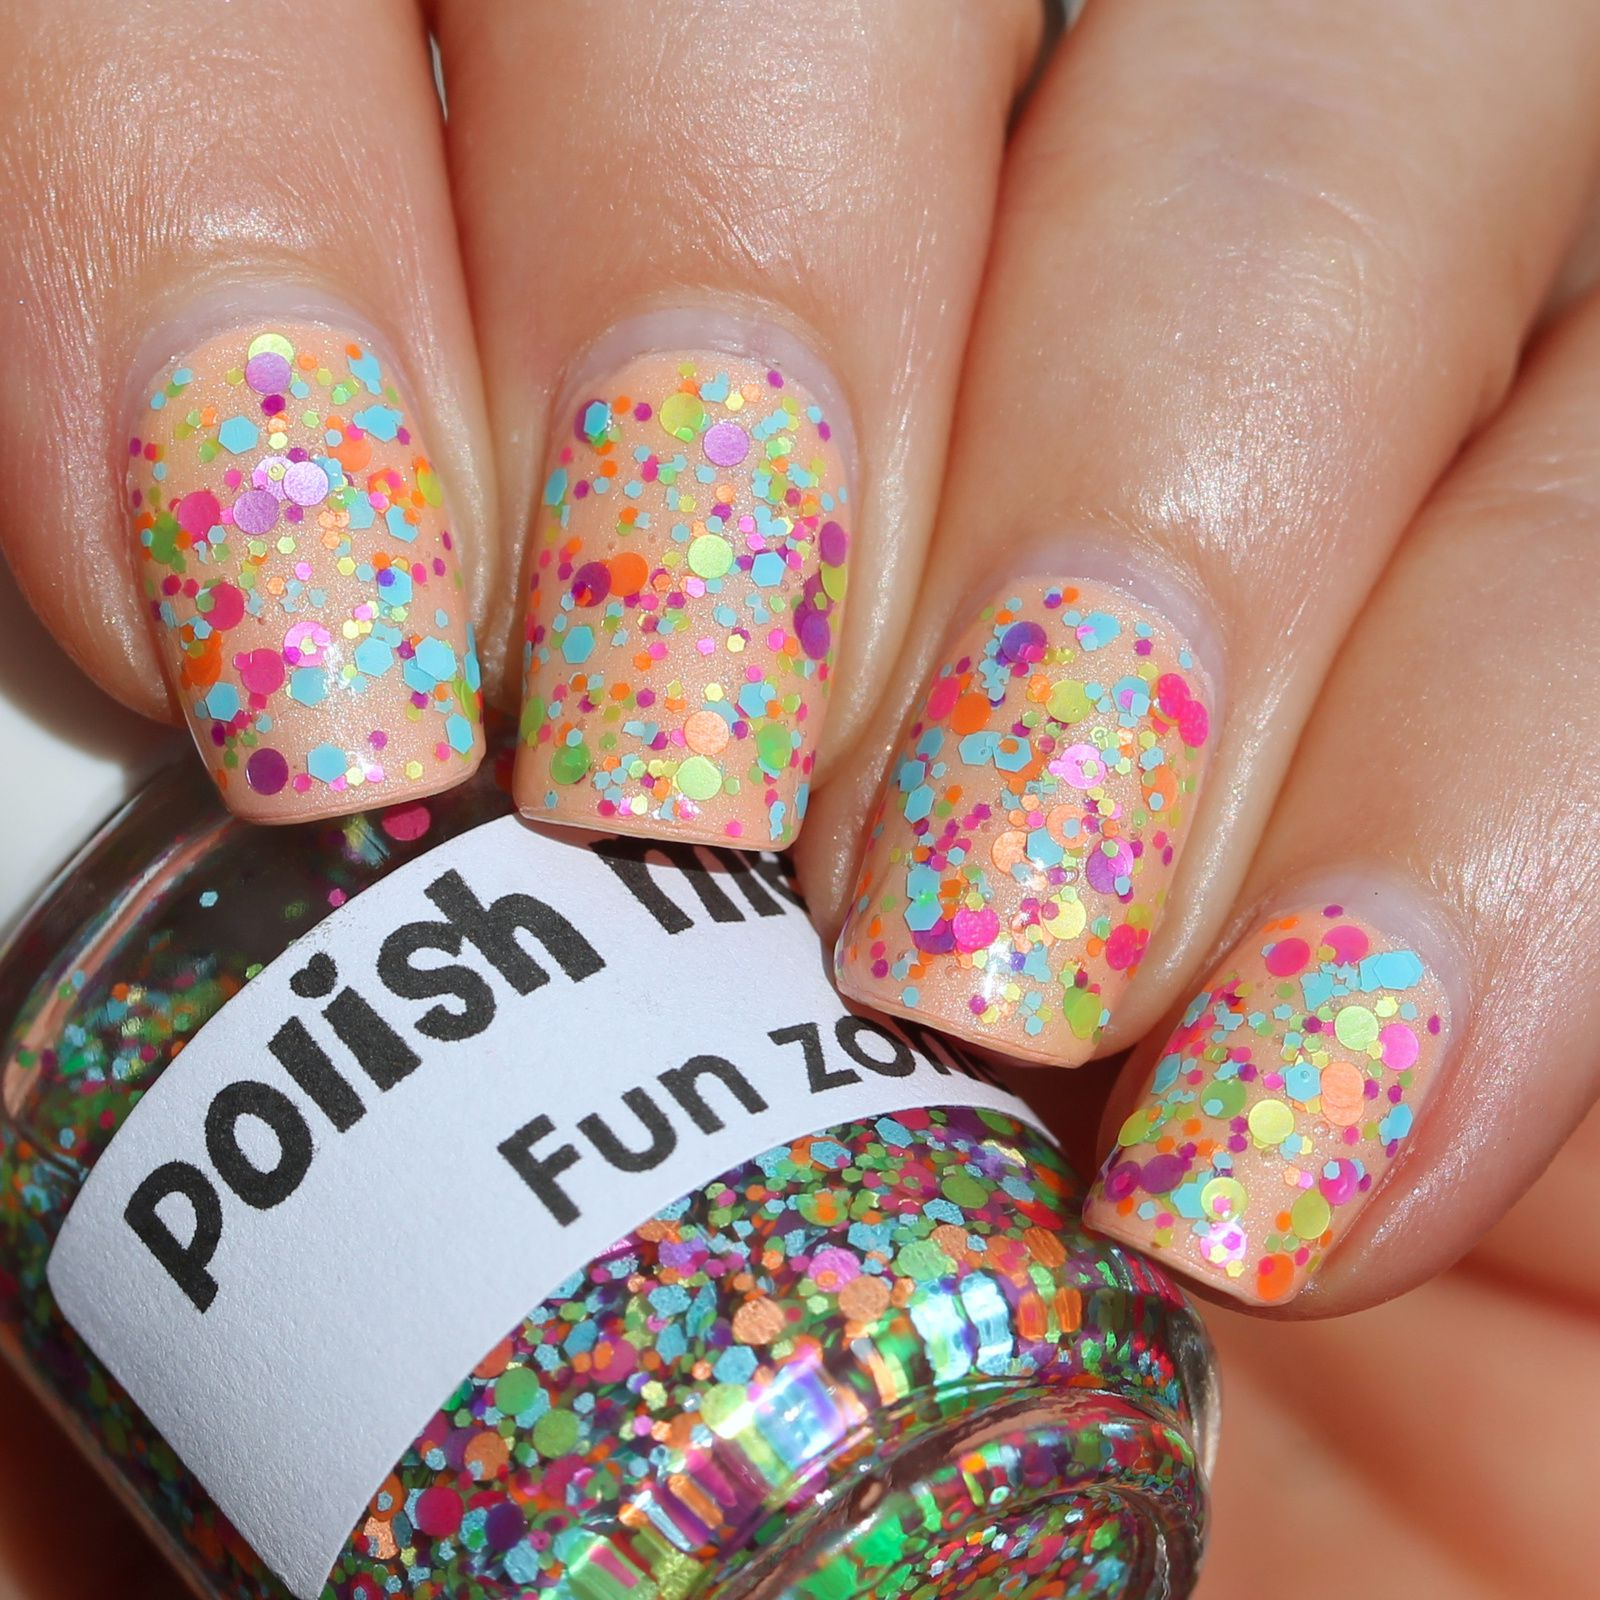 Essie Protein Base Coat / Superchic Lacquer Cause & Effect / Polish Me Silly Fun Zone / Sally Hansen Miracle Gel Top Coat